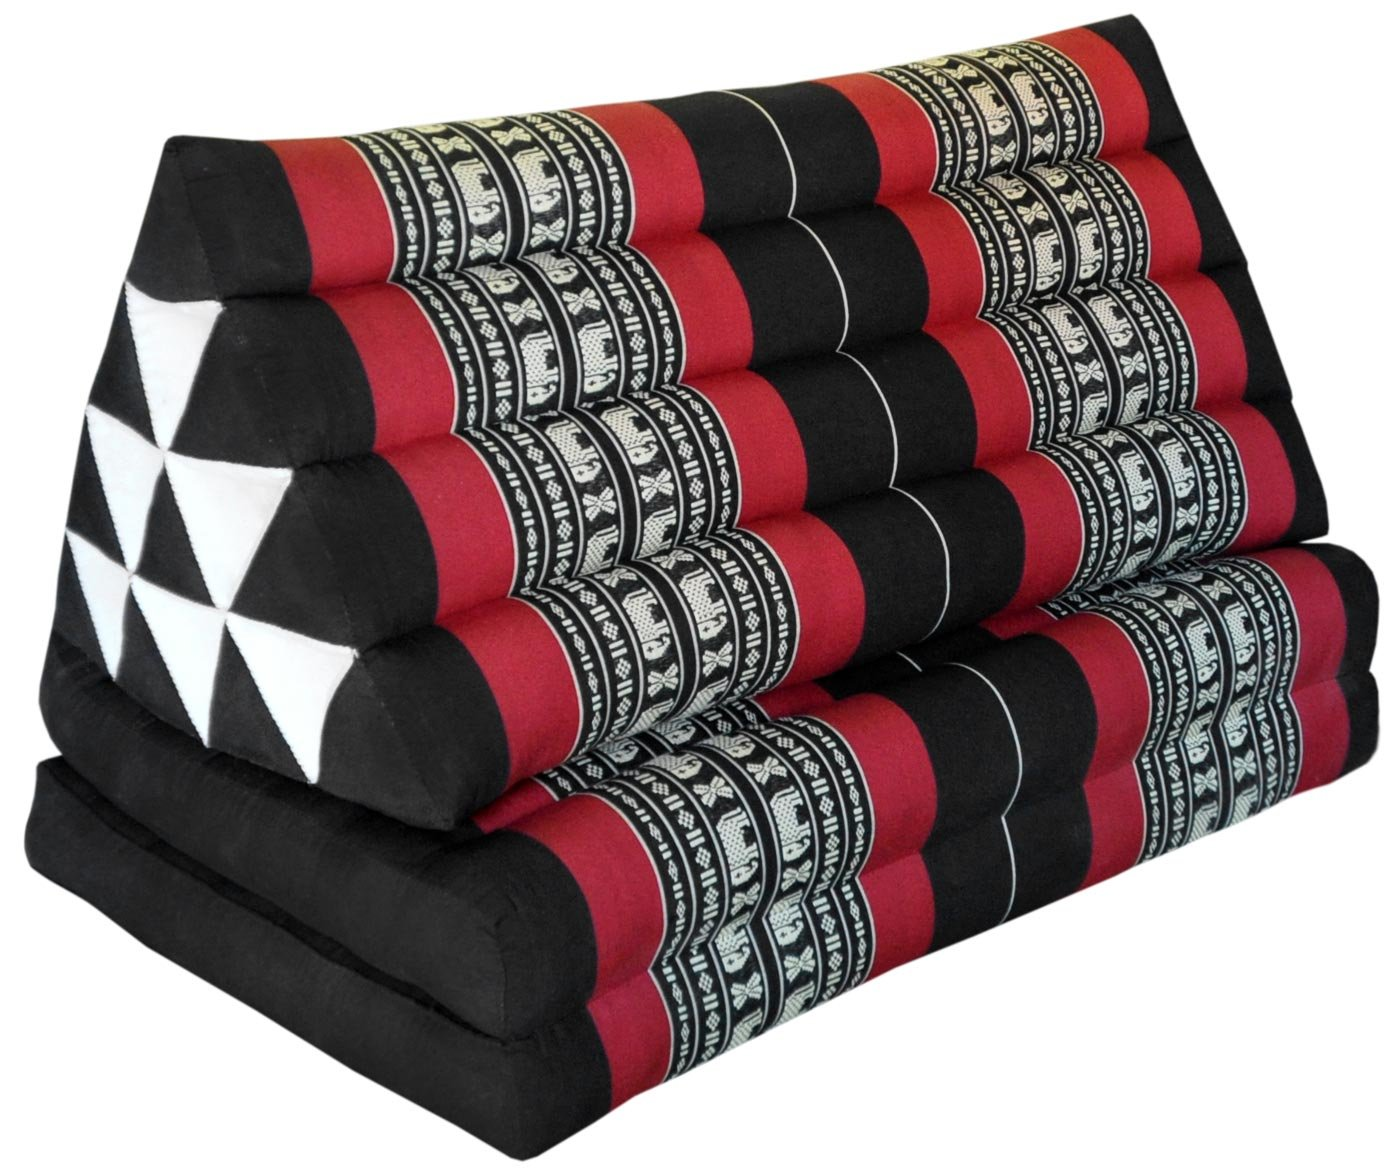 Thai triangle cushion XXL, with 2 folding seats, black/red, sofa, relaxation, beach, pool, meditation, yoga, made in Thailand. (81617) by Wilai GmbH